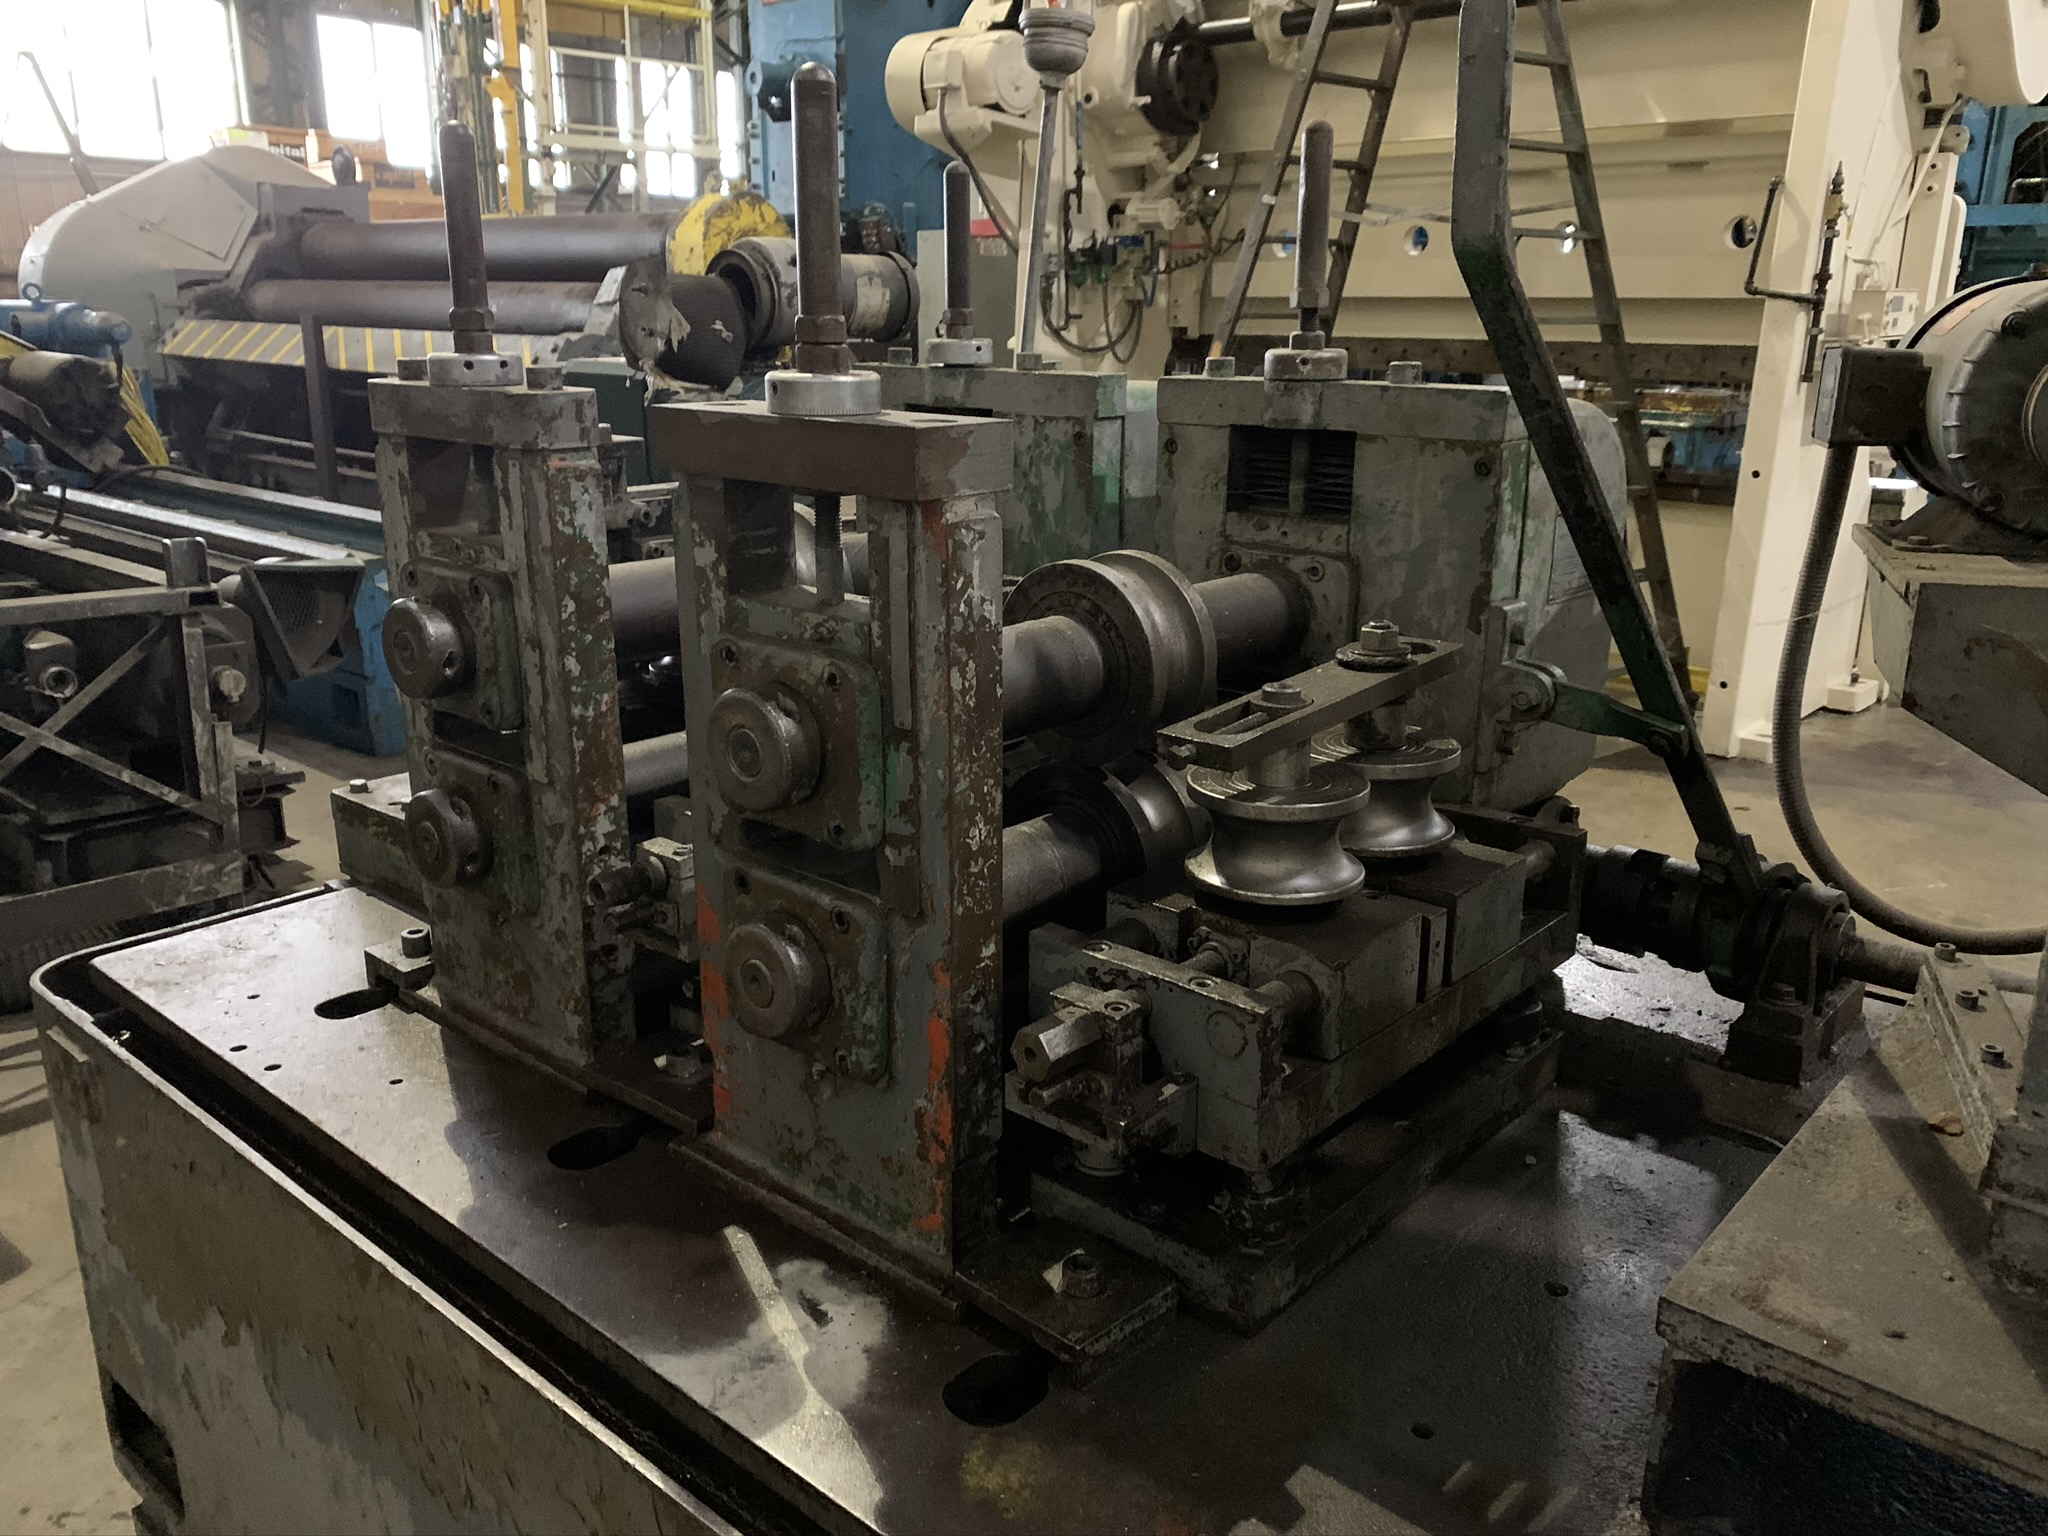 YODER MODEL M2.5 TUBE MILL; S/N C0-1424, 9-STAND 4-BREADKDOWN STANDS, (3) FINISHING STANDS, (2) - Image 2 of 8